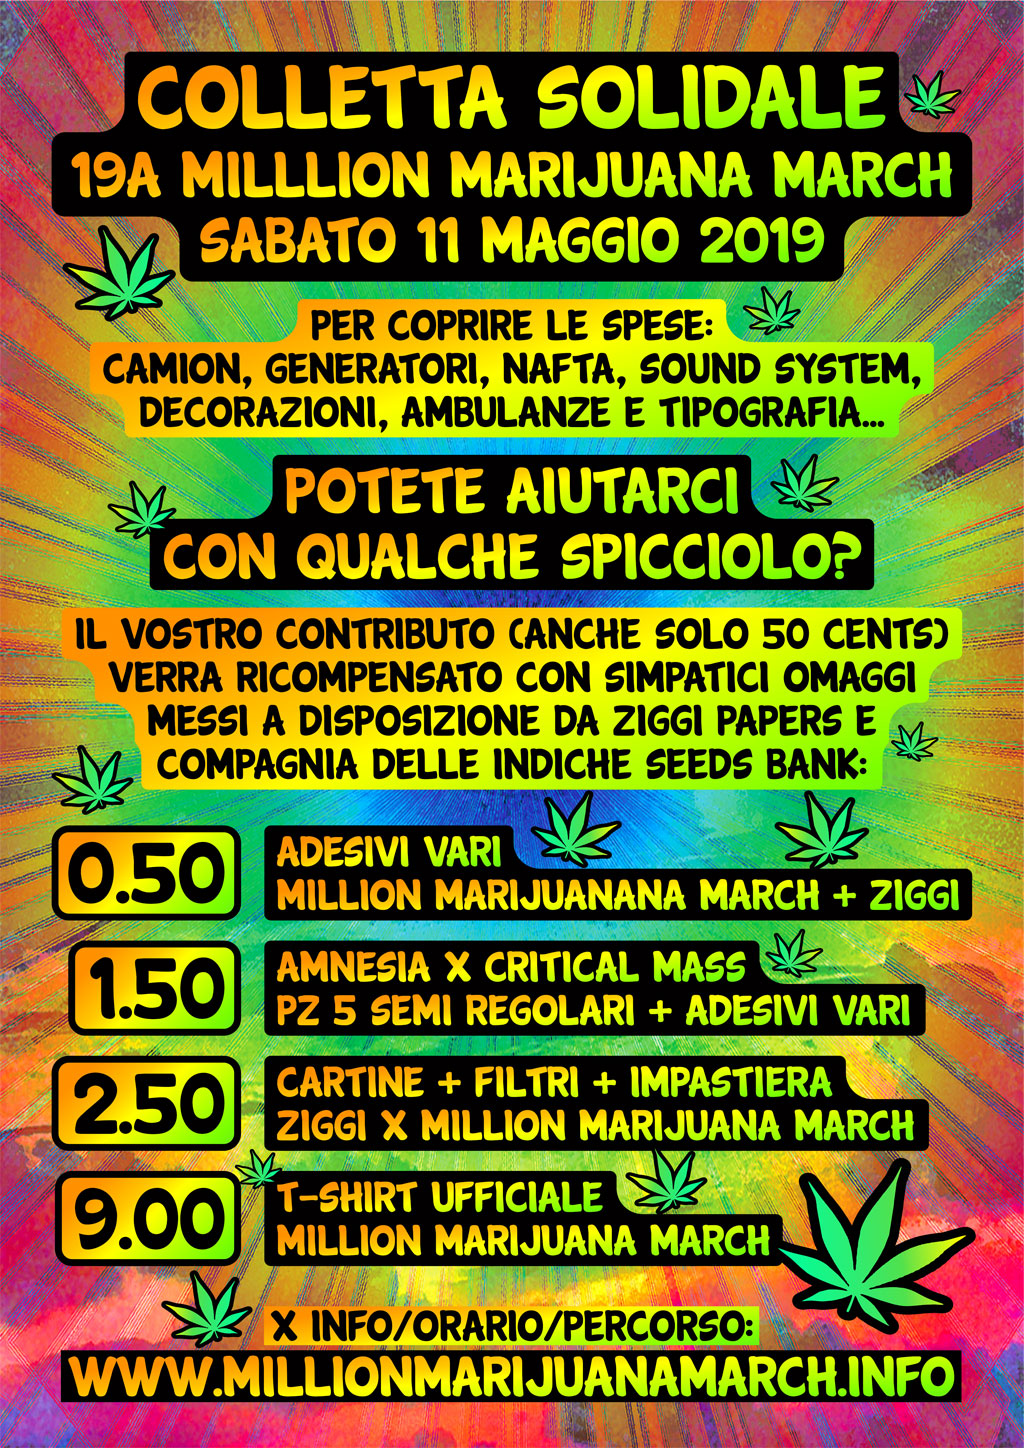 Colletta Solidale #MMM19